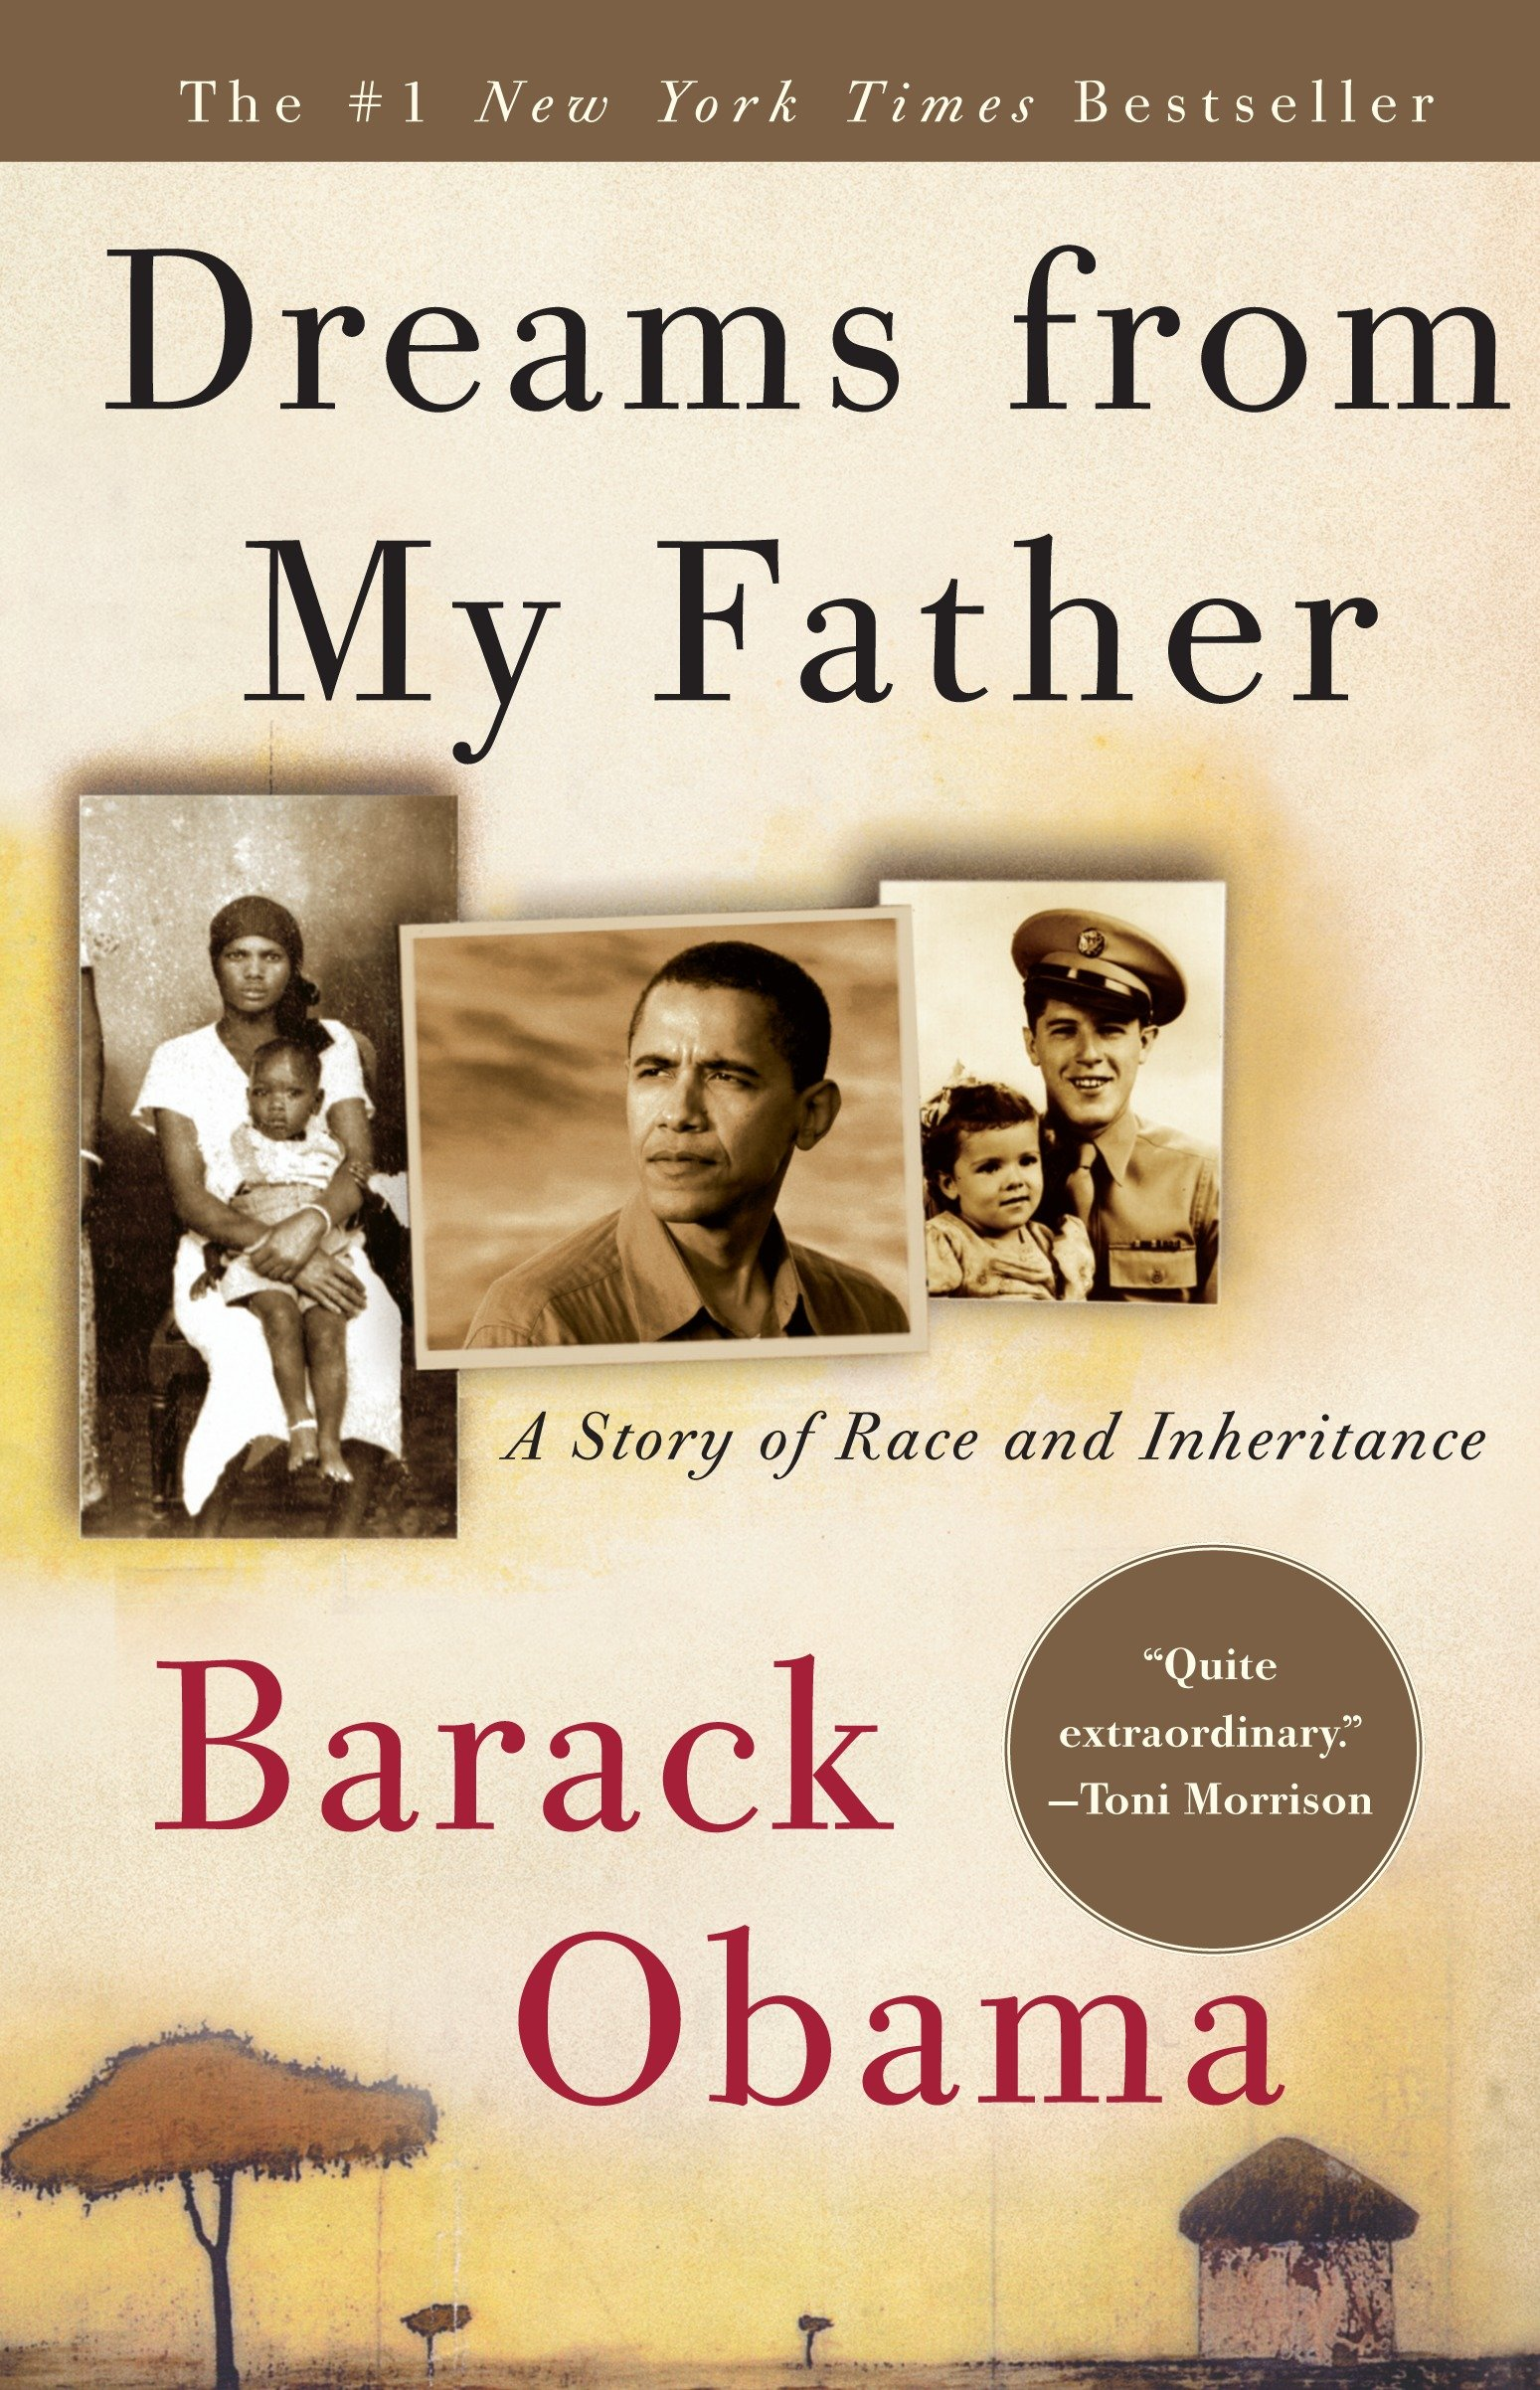 Dreams from my father a story of race and inheritance cover image